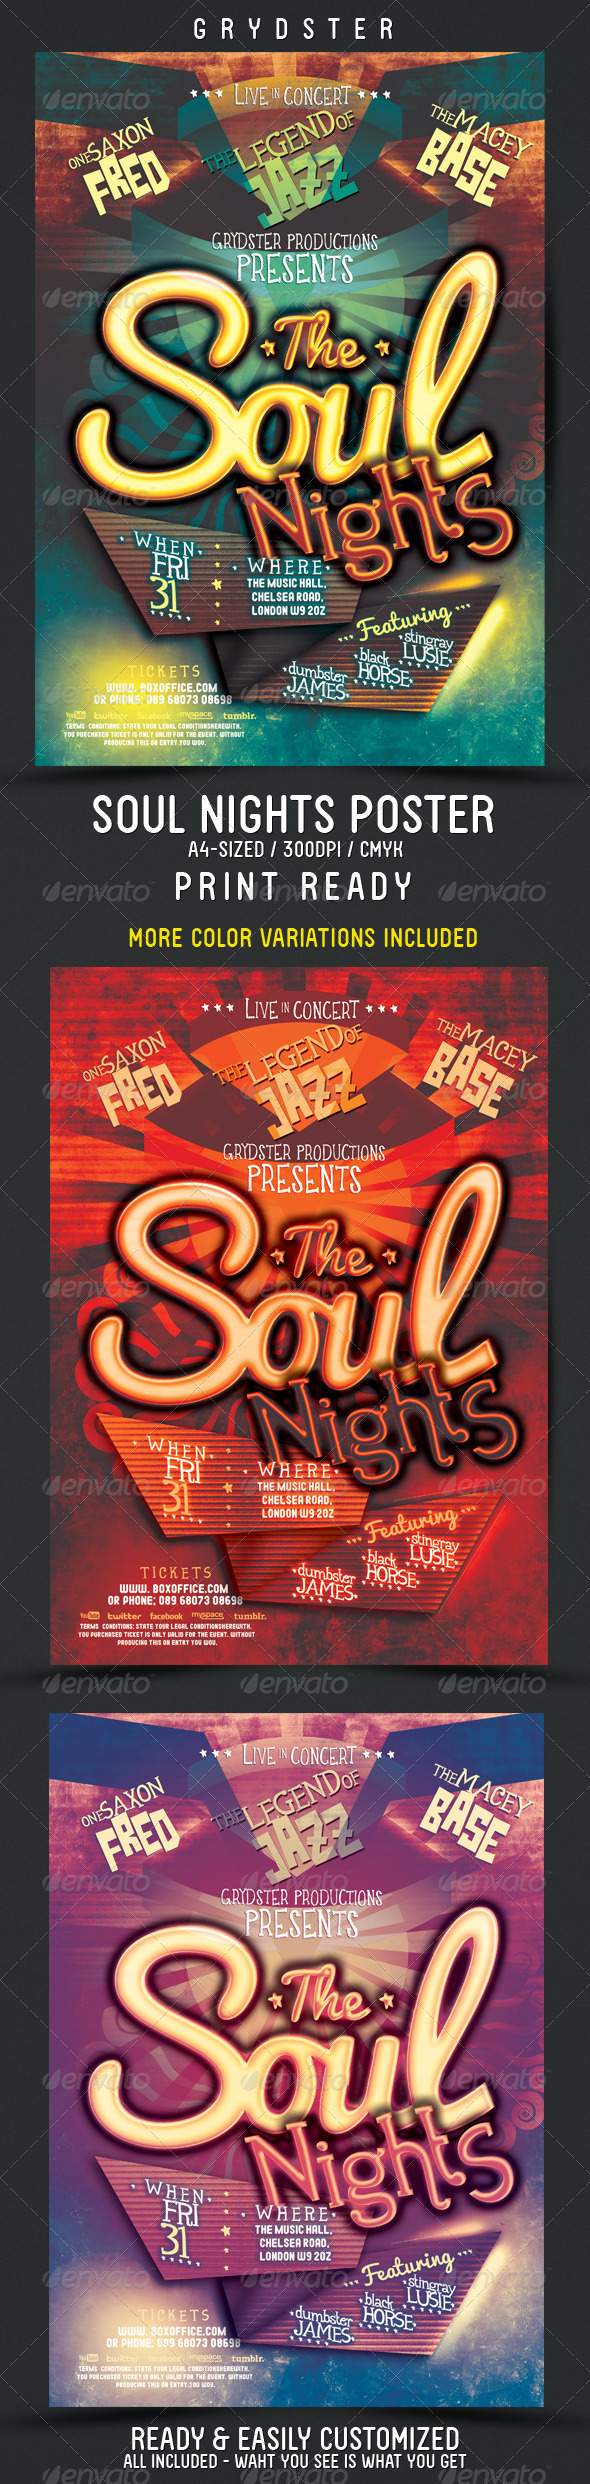 Soul Nights Flyer - Poster - Clubs & Parties Events